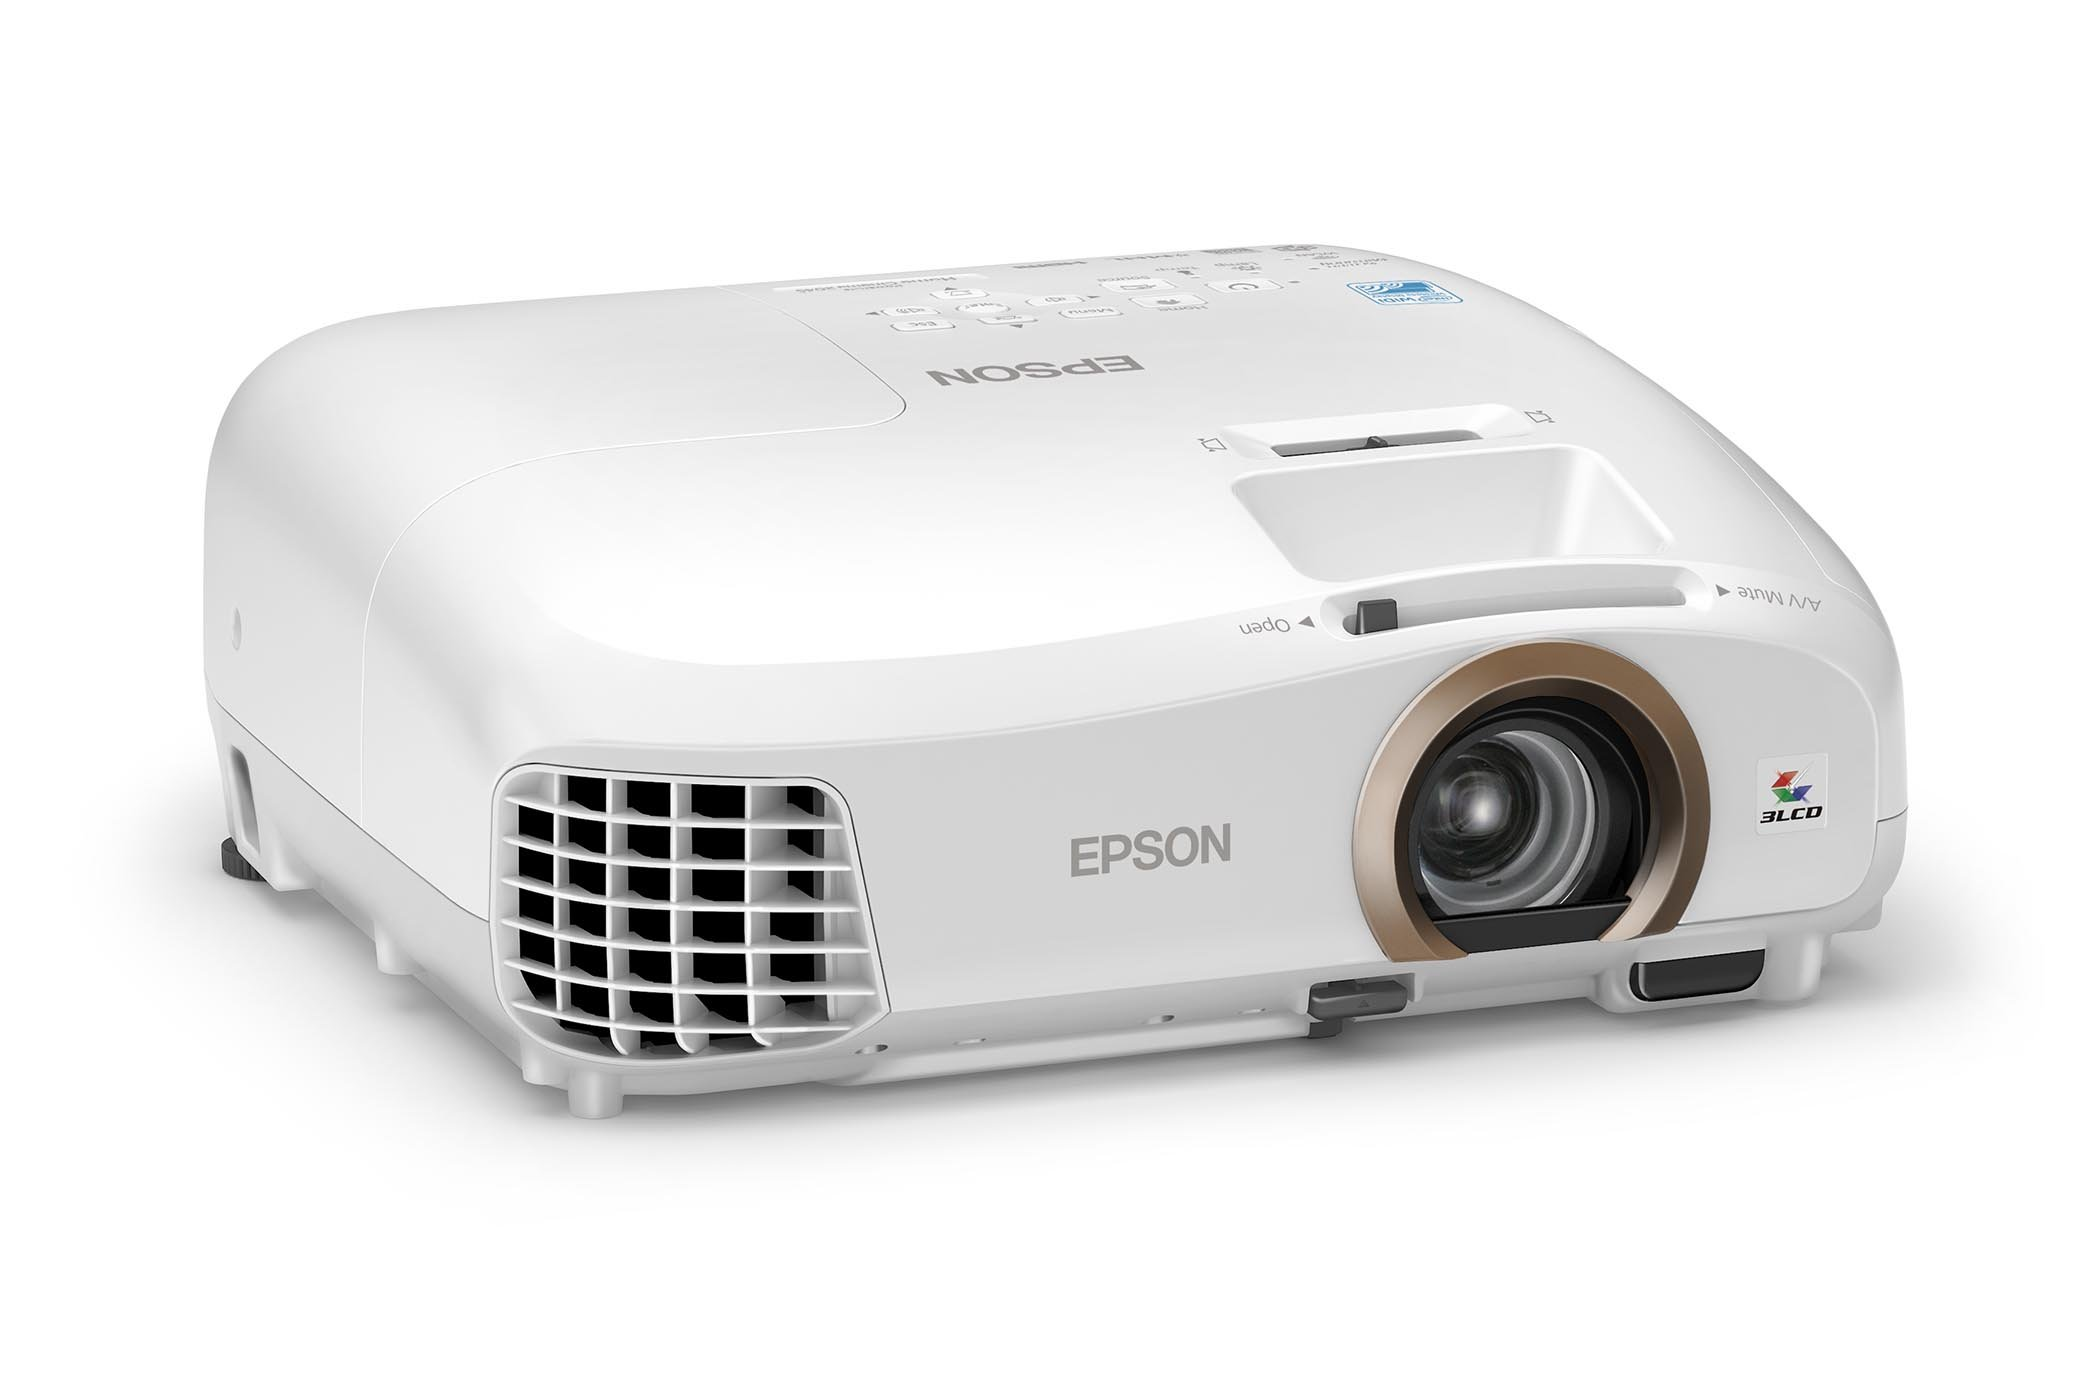 Epson Home Cinema 2045 1080p 3D Miracast 3LCD Home Theater Projector by Epson (Image #4)